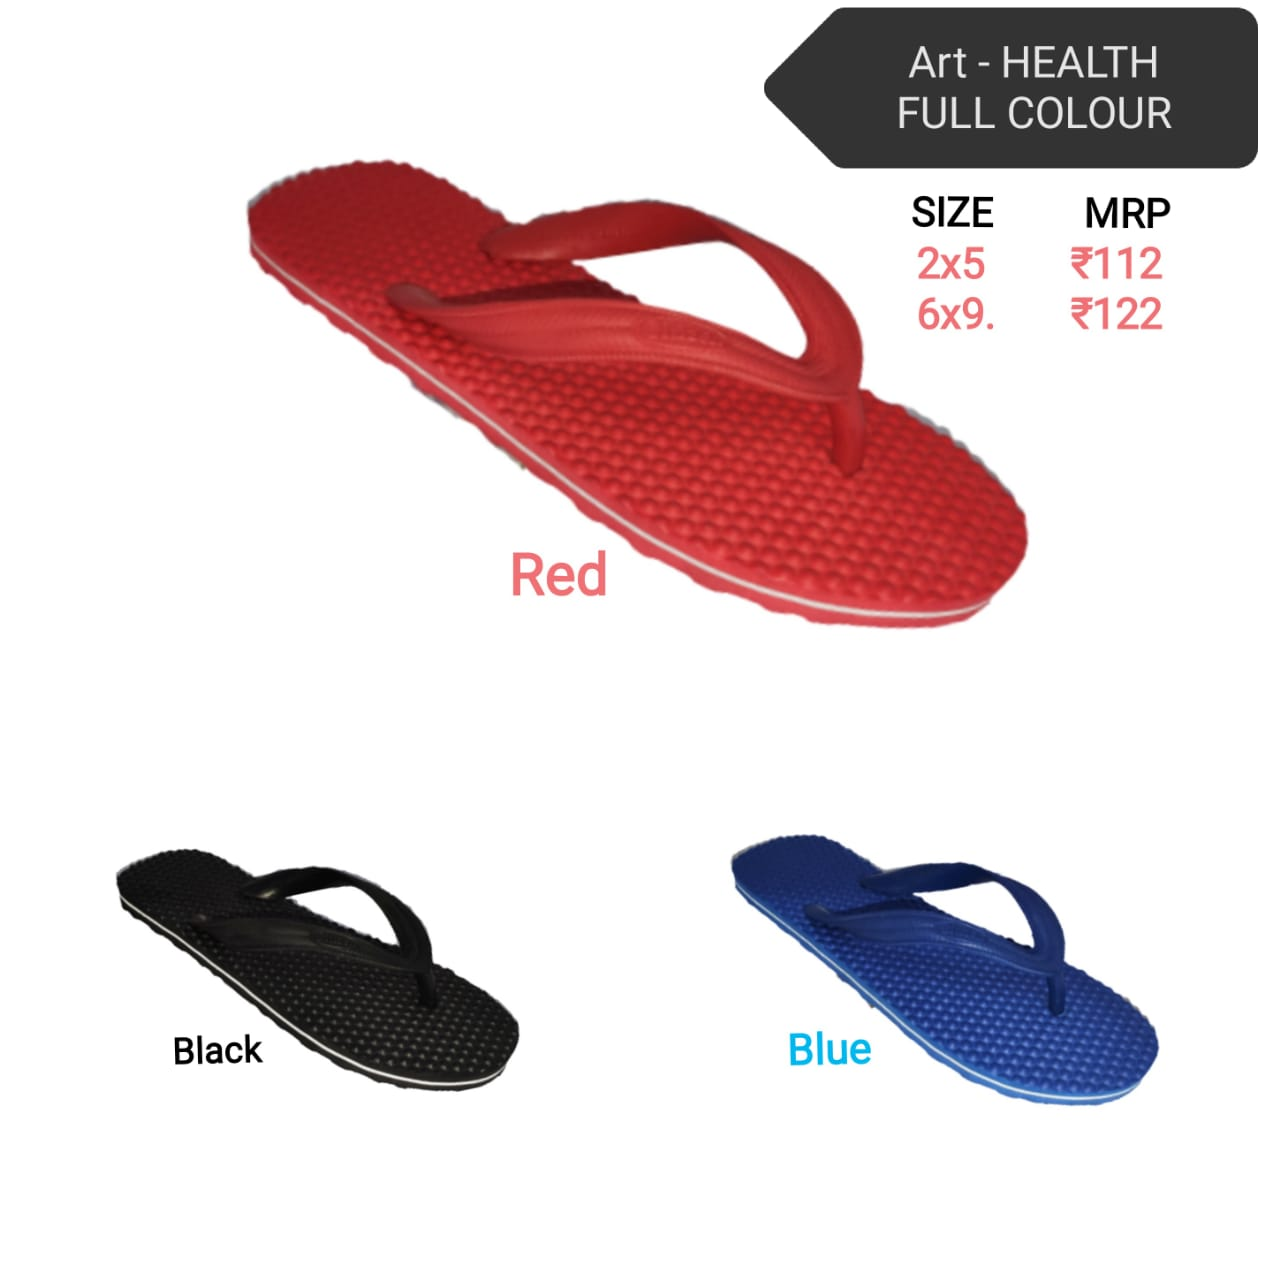 Citizen gents hawai - health-full/colour flip flop , slippers